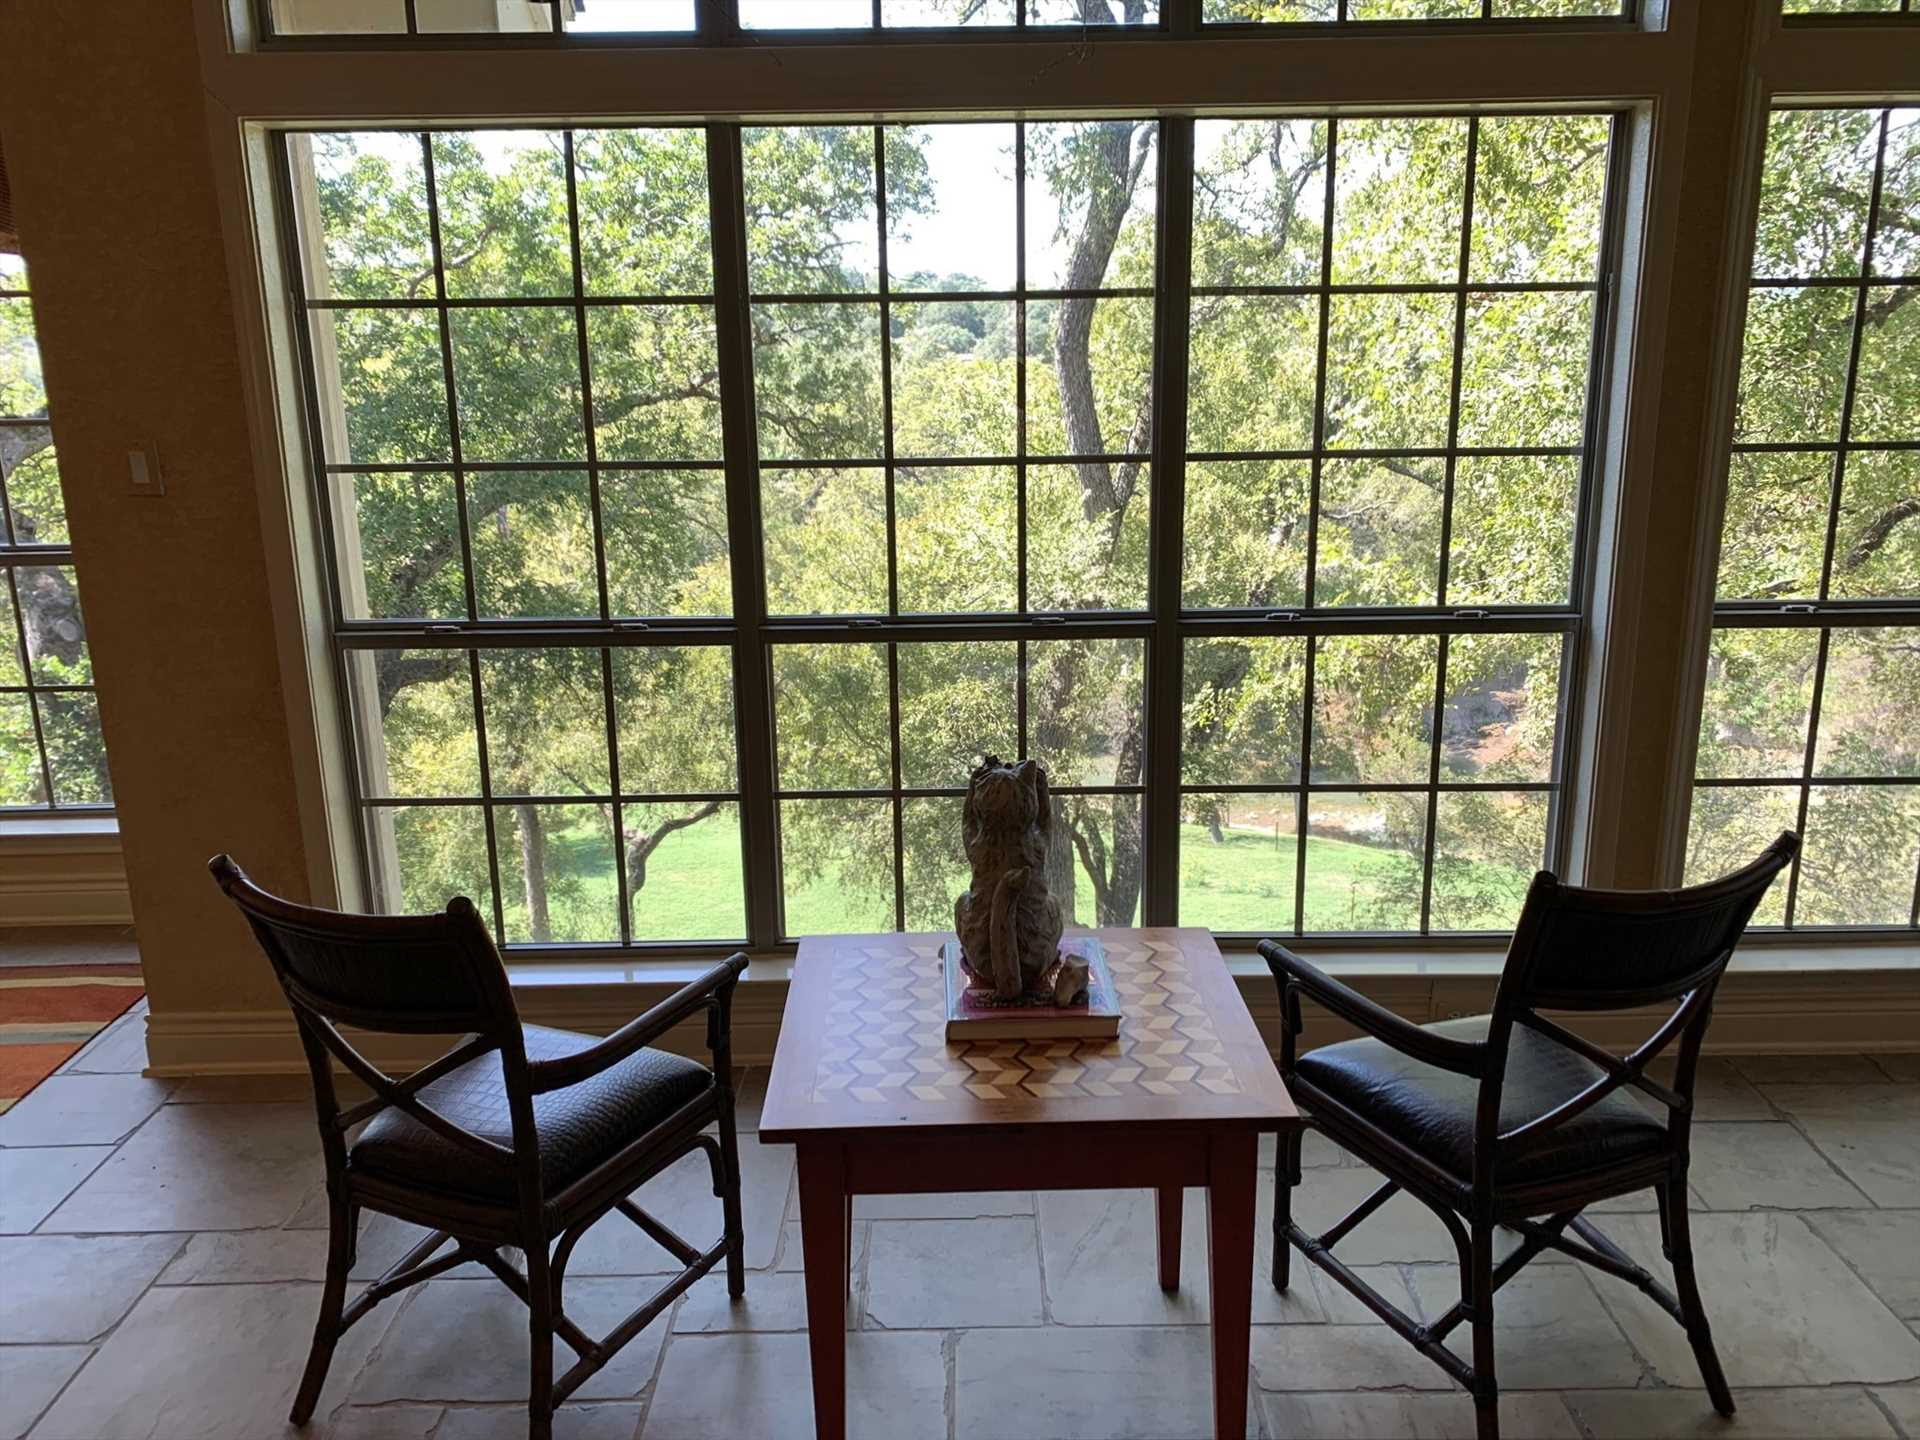 Our guest Branelle shared the view she had from the living area: